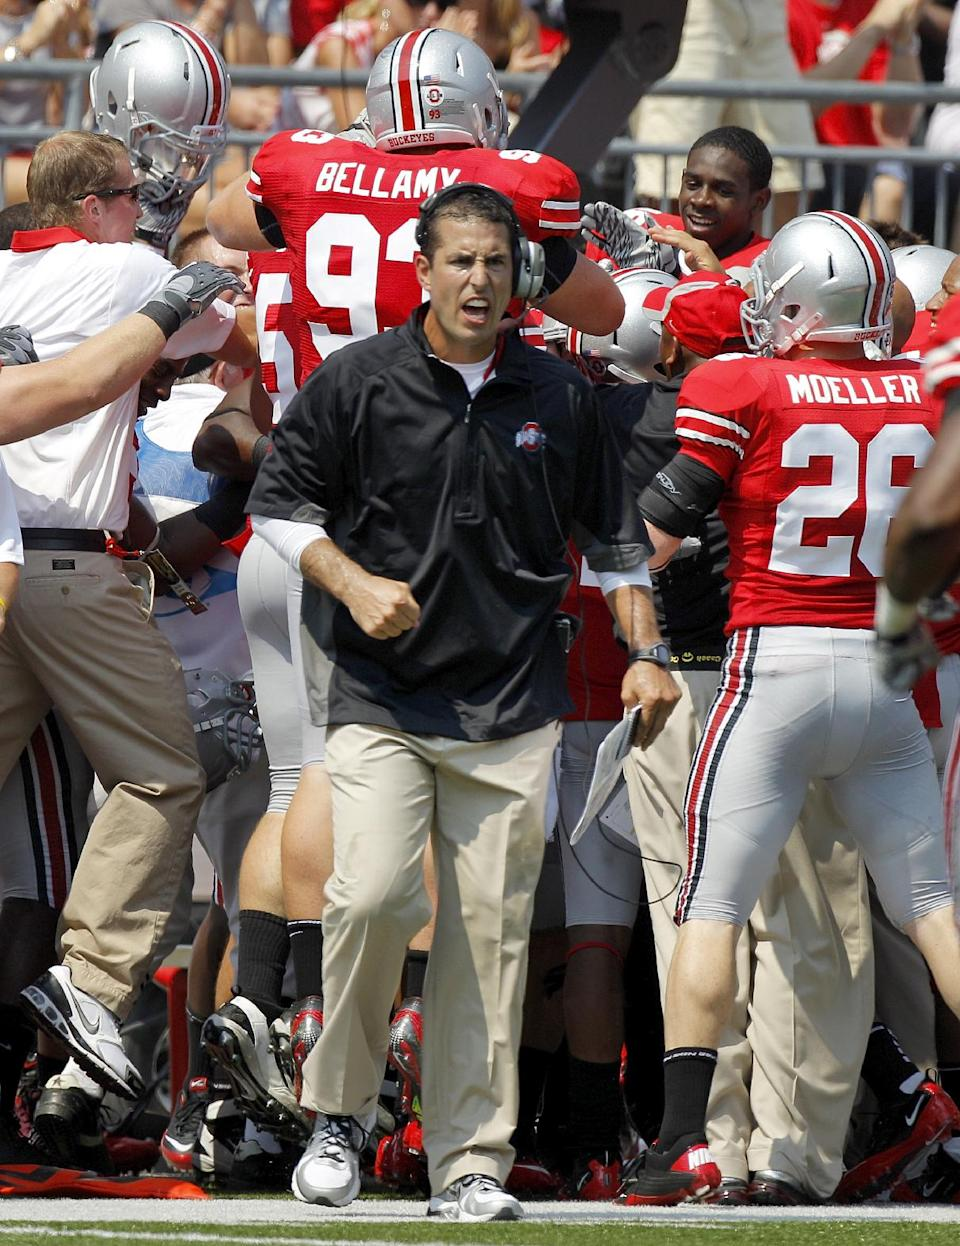 Ohio State head coach Luke Fickell reacts toward the field as his players pile on linebacker Andrew Sweat behind him after Sweat intercepted a pass from Akron quarterback Clayton Moore during the second quarter of an NCAA college football game in Columbus, Ohio on Saturday, Sept. 3, 2011.  (AP Photo/Amy Sancetta)